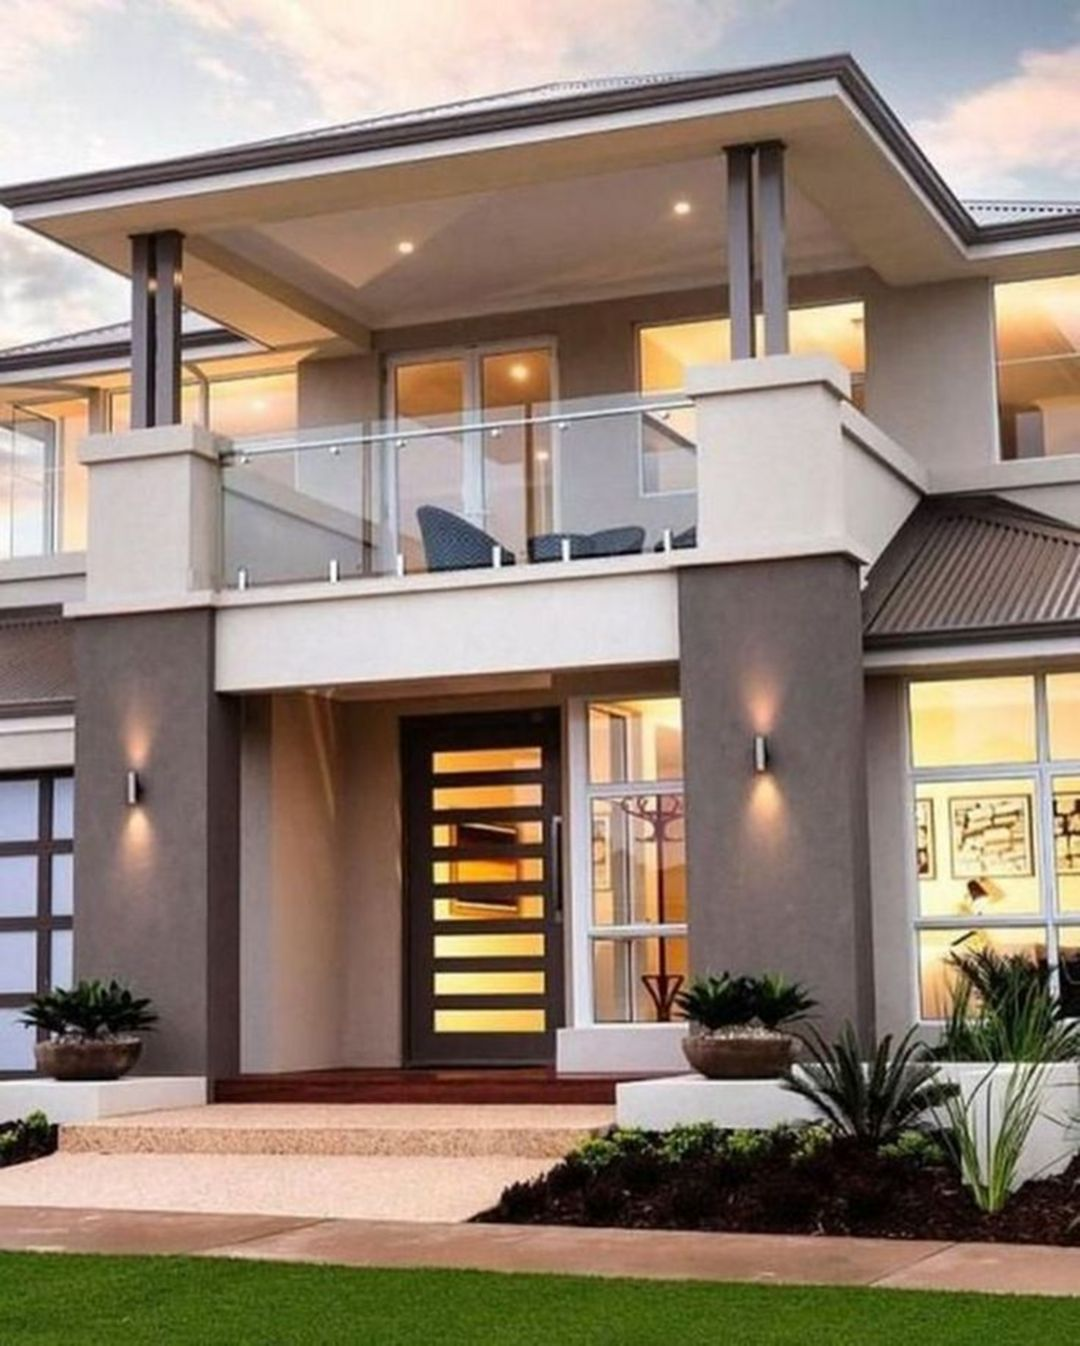 15 Fabulous Luxurious Home Design Ideas You Have To See